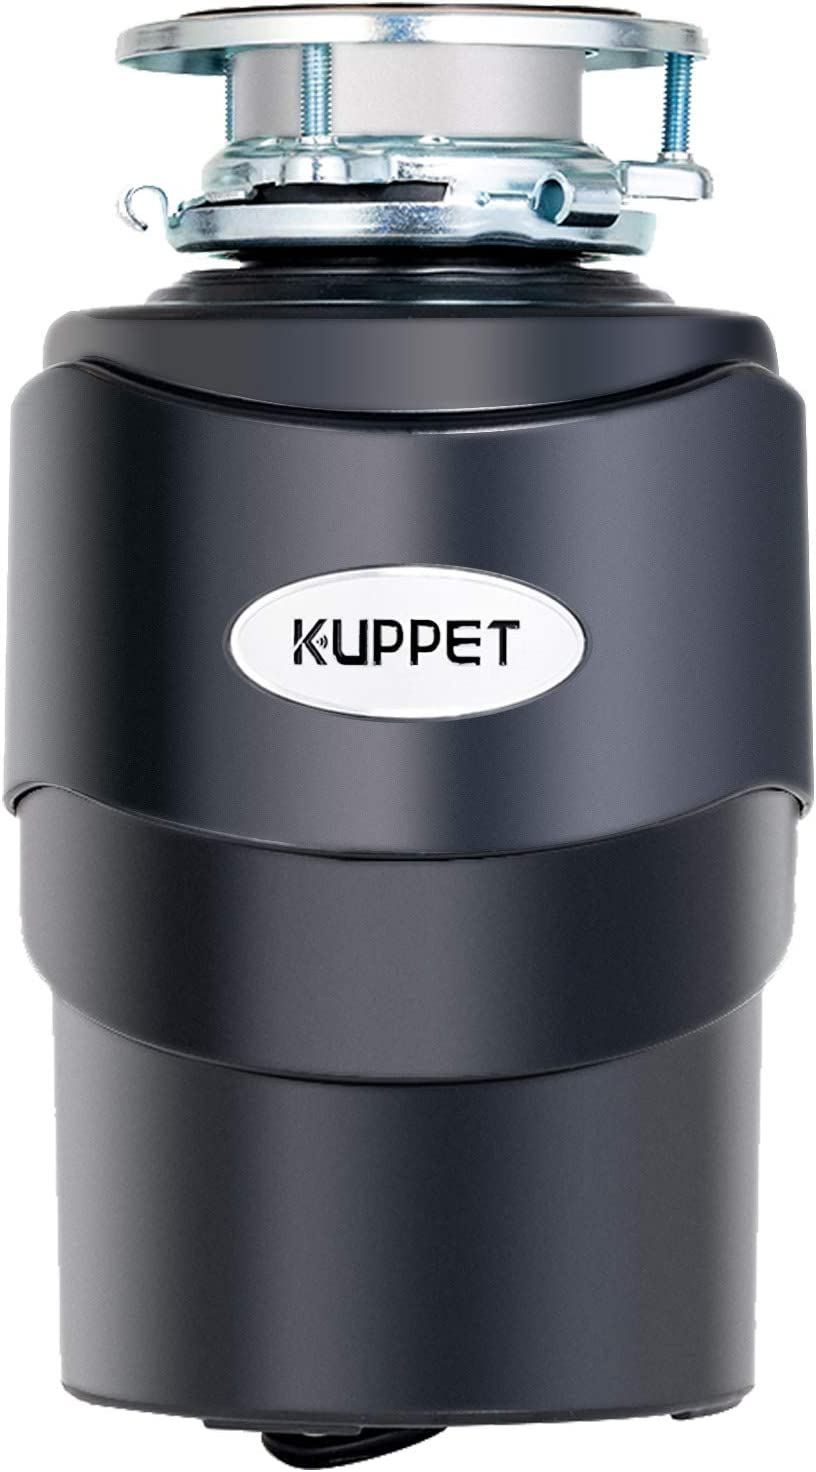 KUPPET Garbage Disposal with Power Cord, 1/2 HP, 40 oz Chamber Capacity